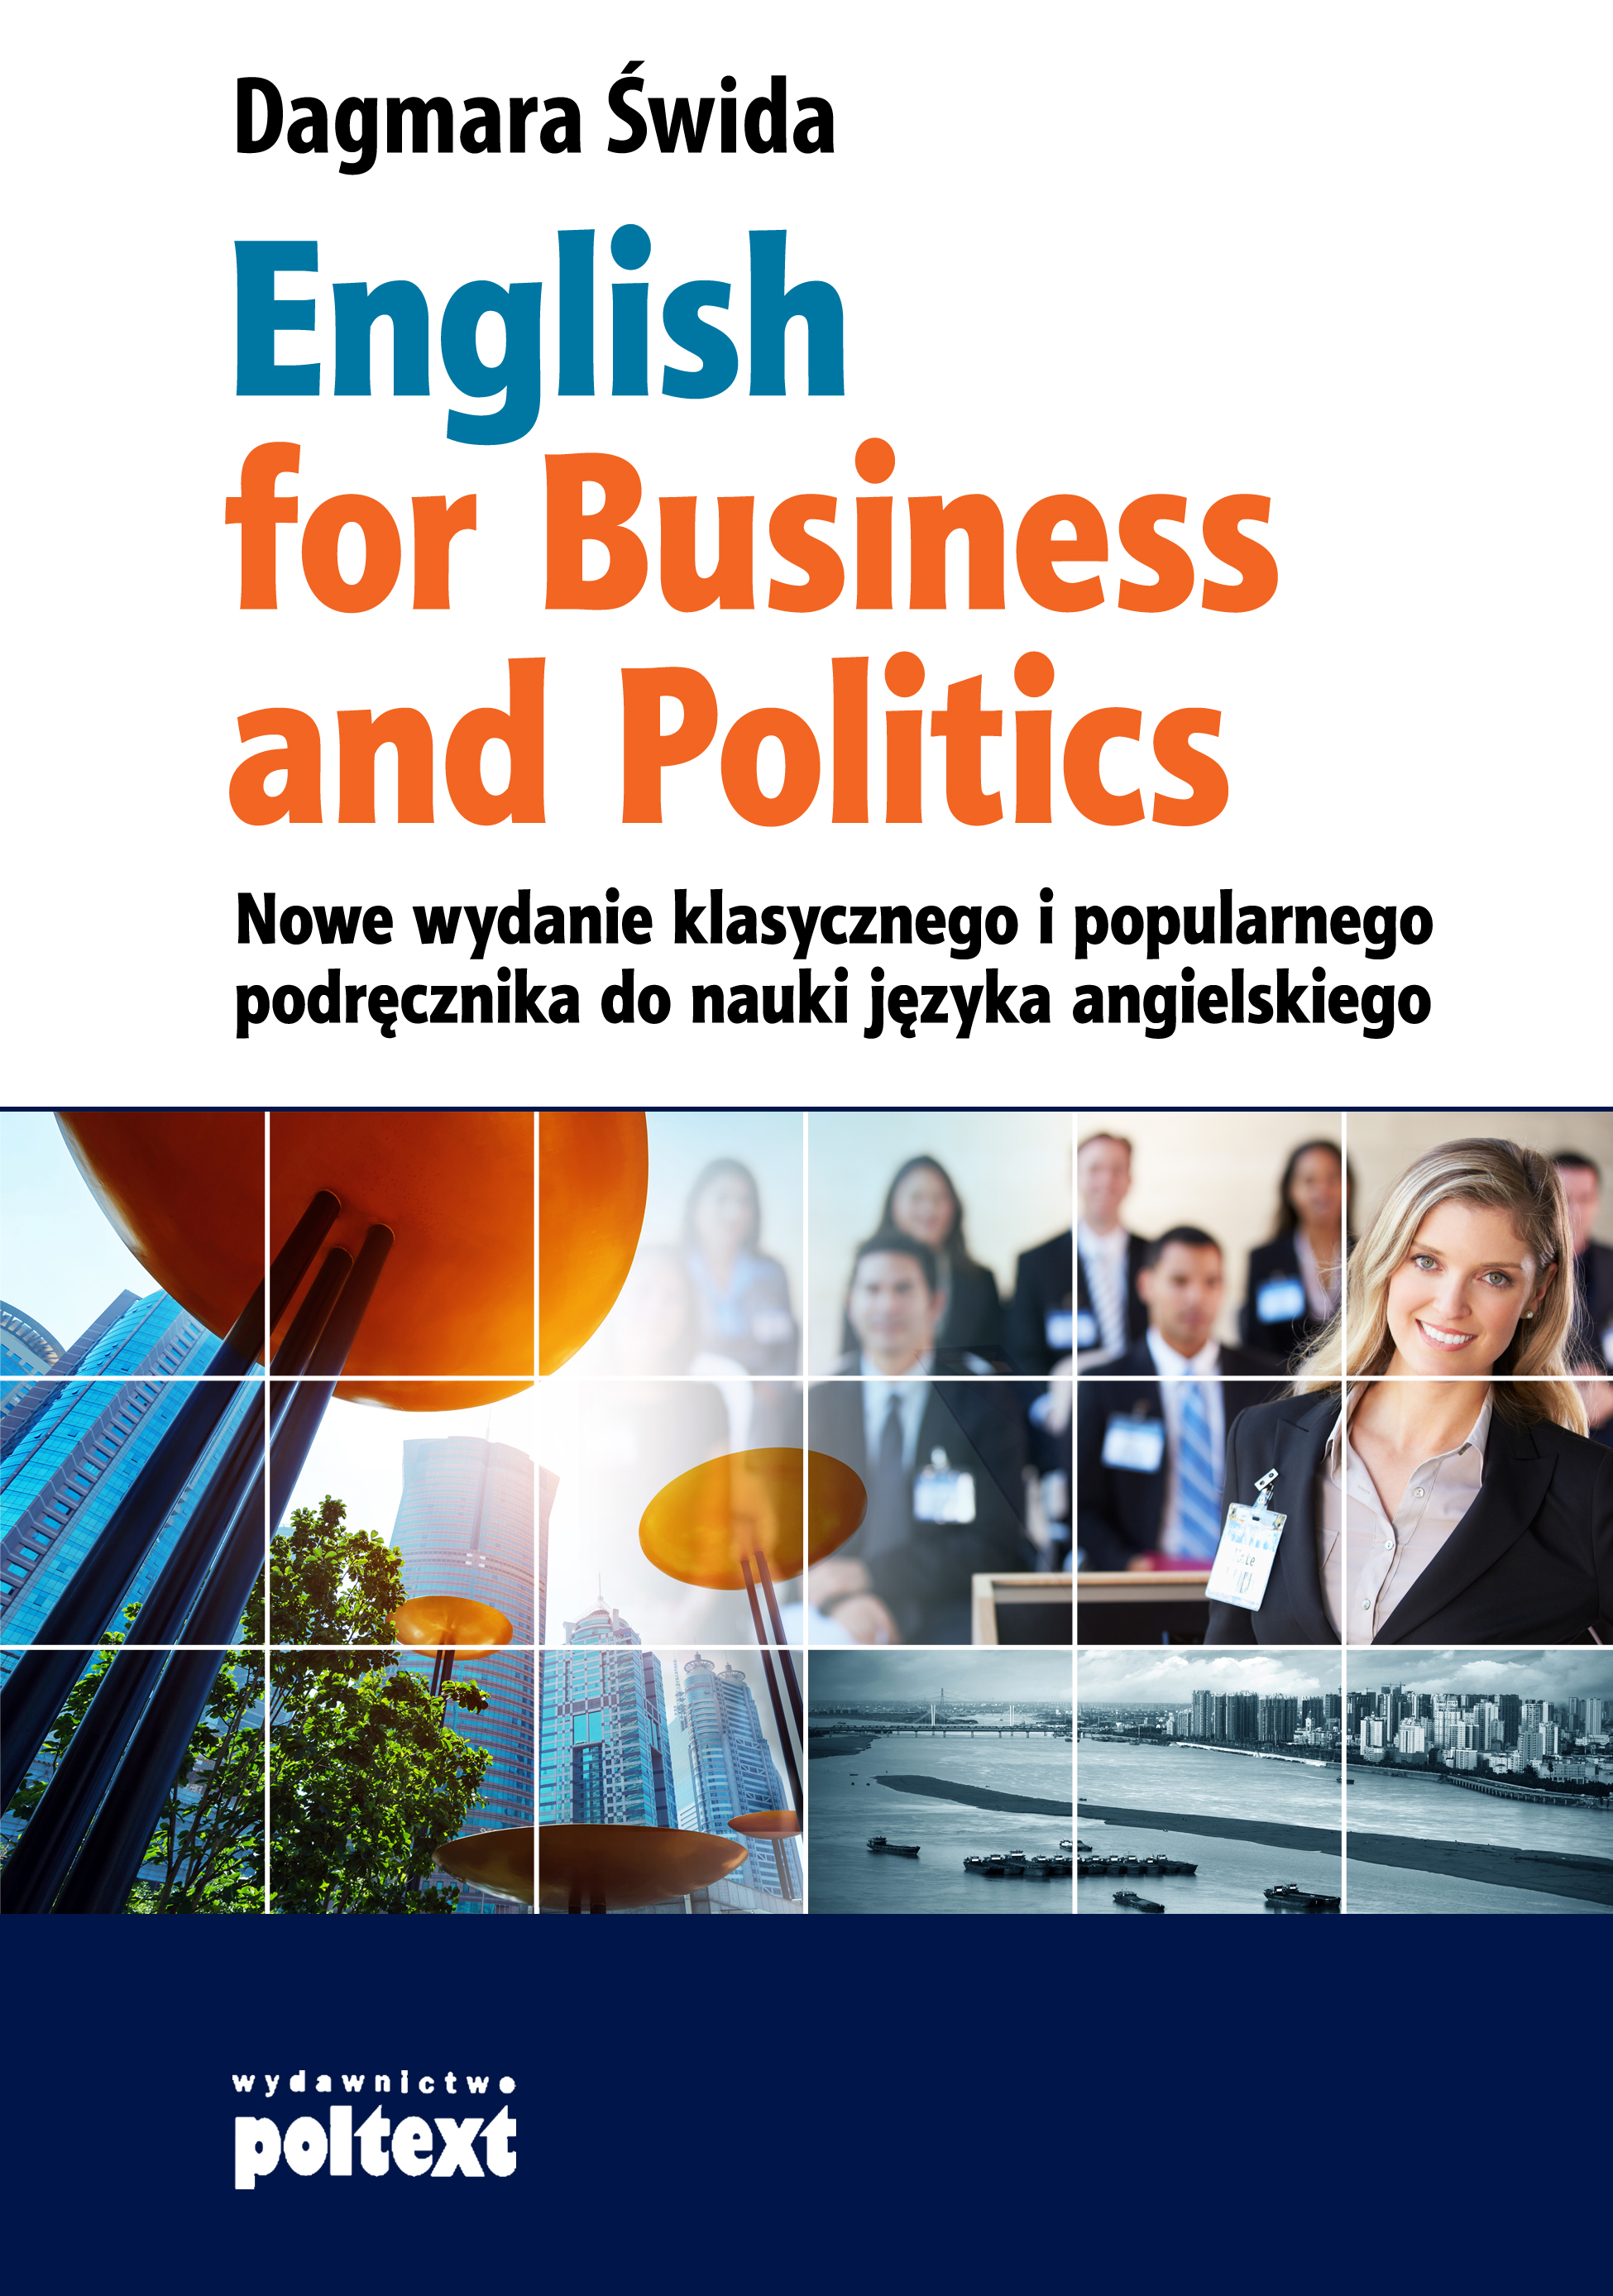 English for Business and Politics. English for Business and Politics. English for Business and Politics.